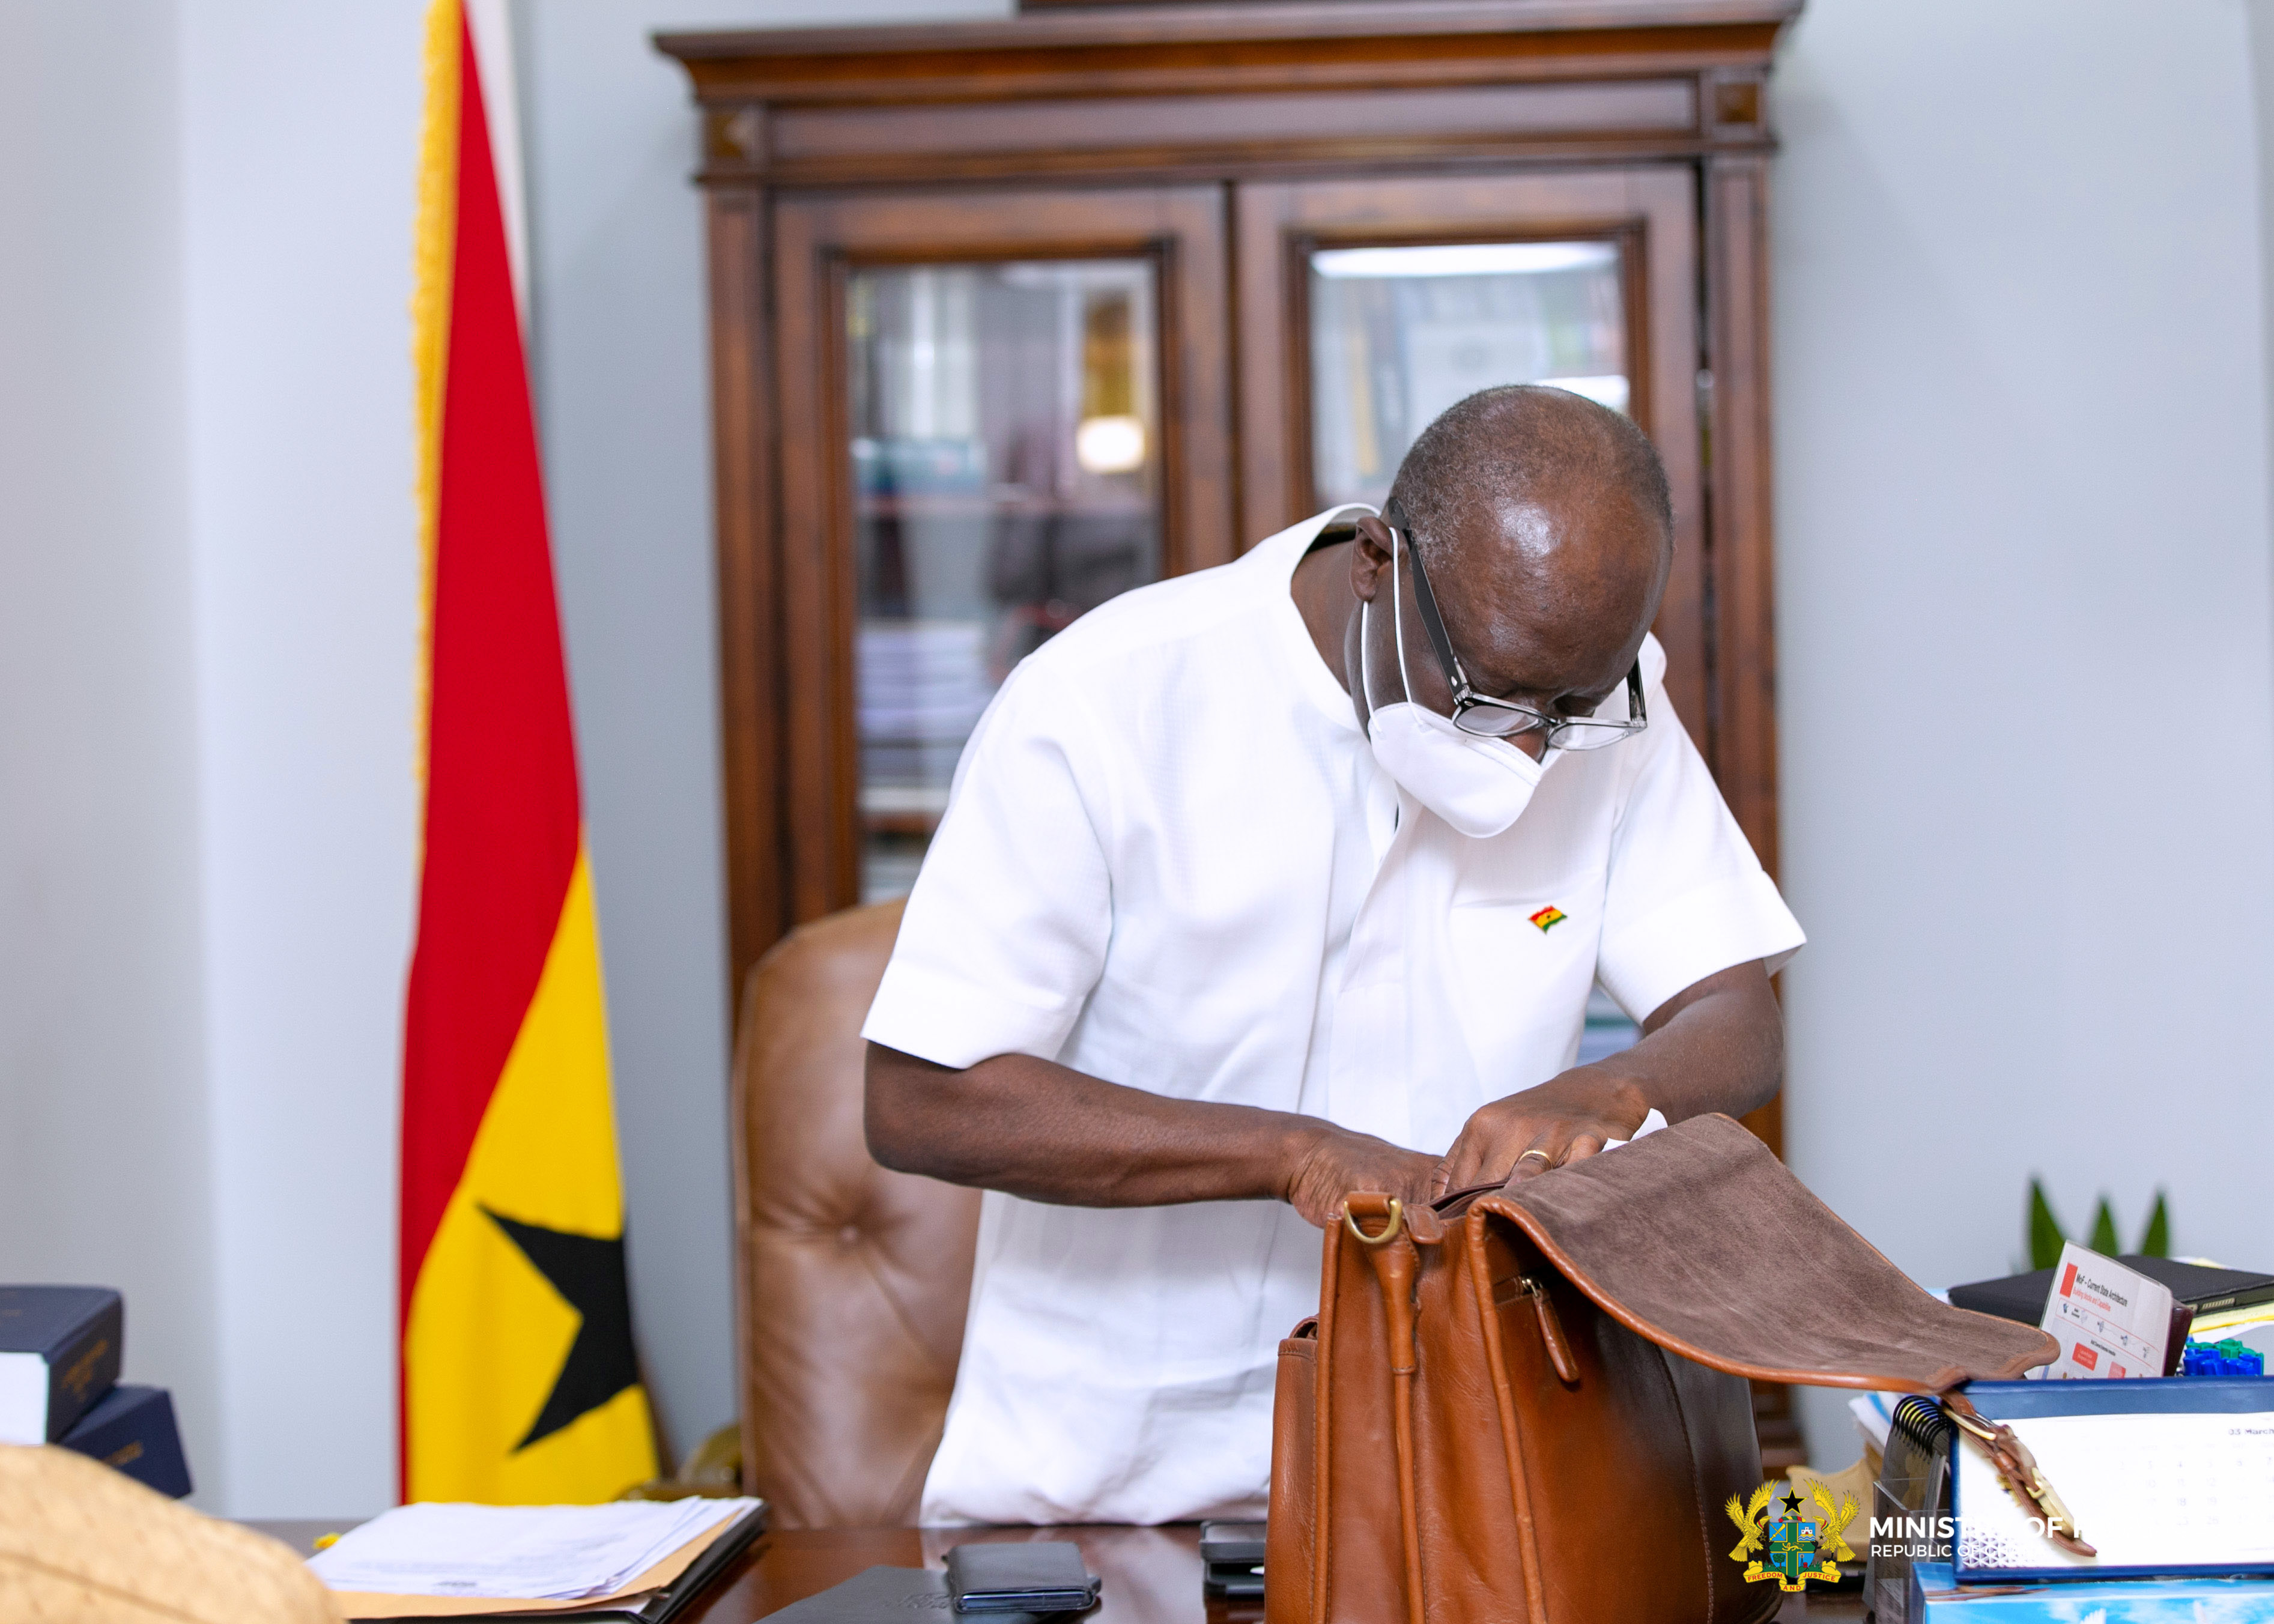 Finance Minister's Frist Day at Work 2021